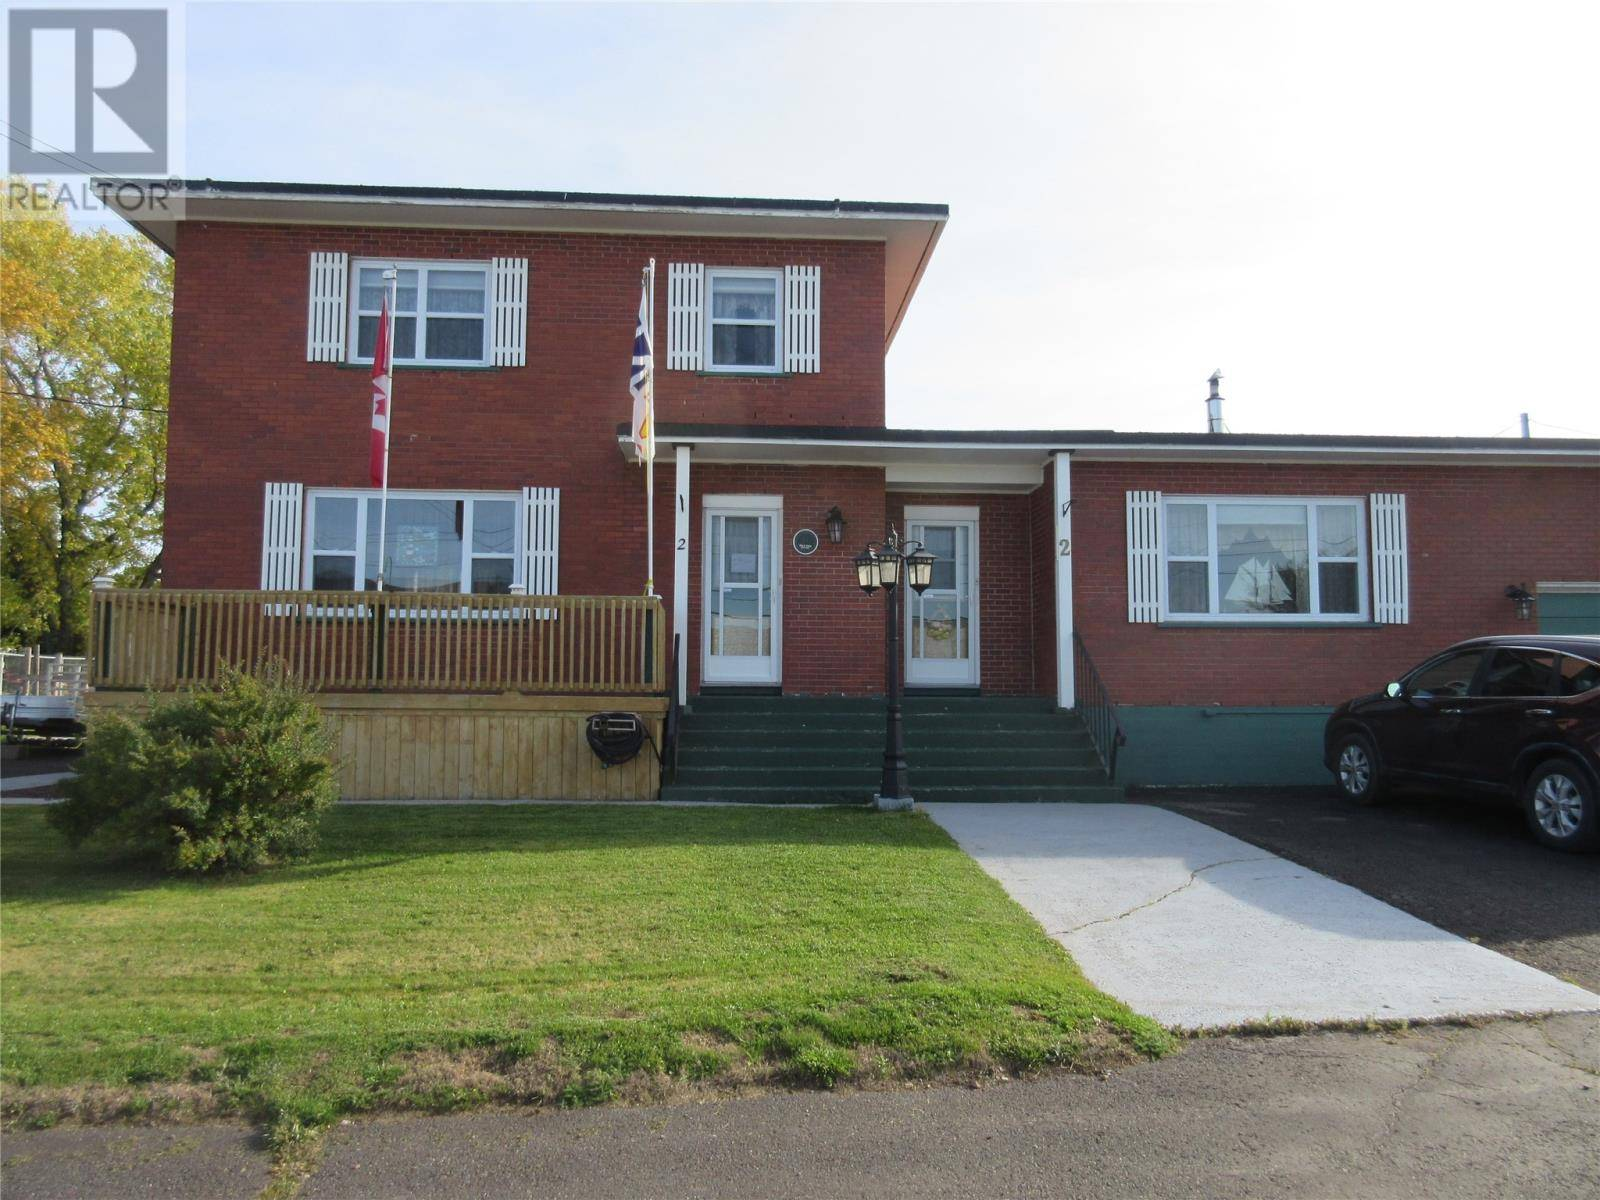 House for sale at 2 Harvey Rd Botwood Newfoundland - MLS: 1209311